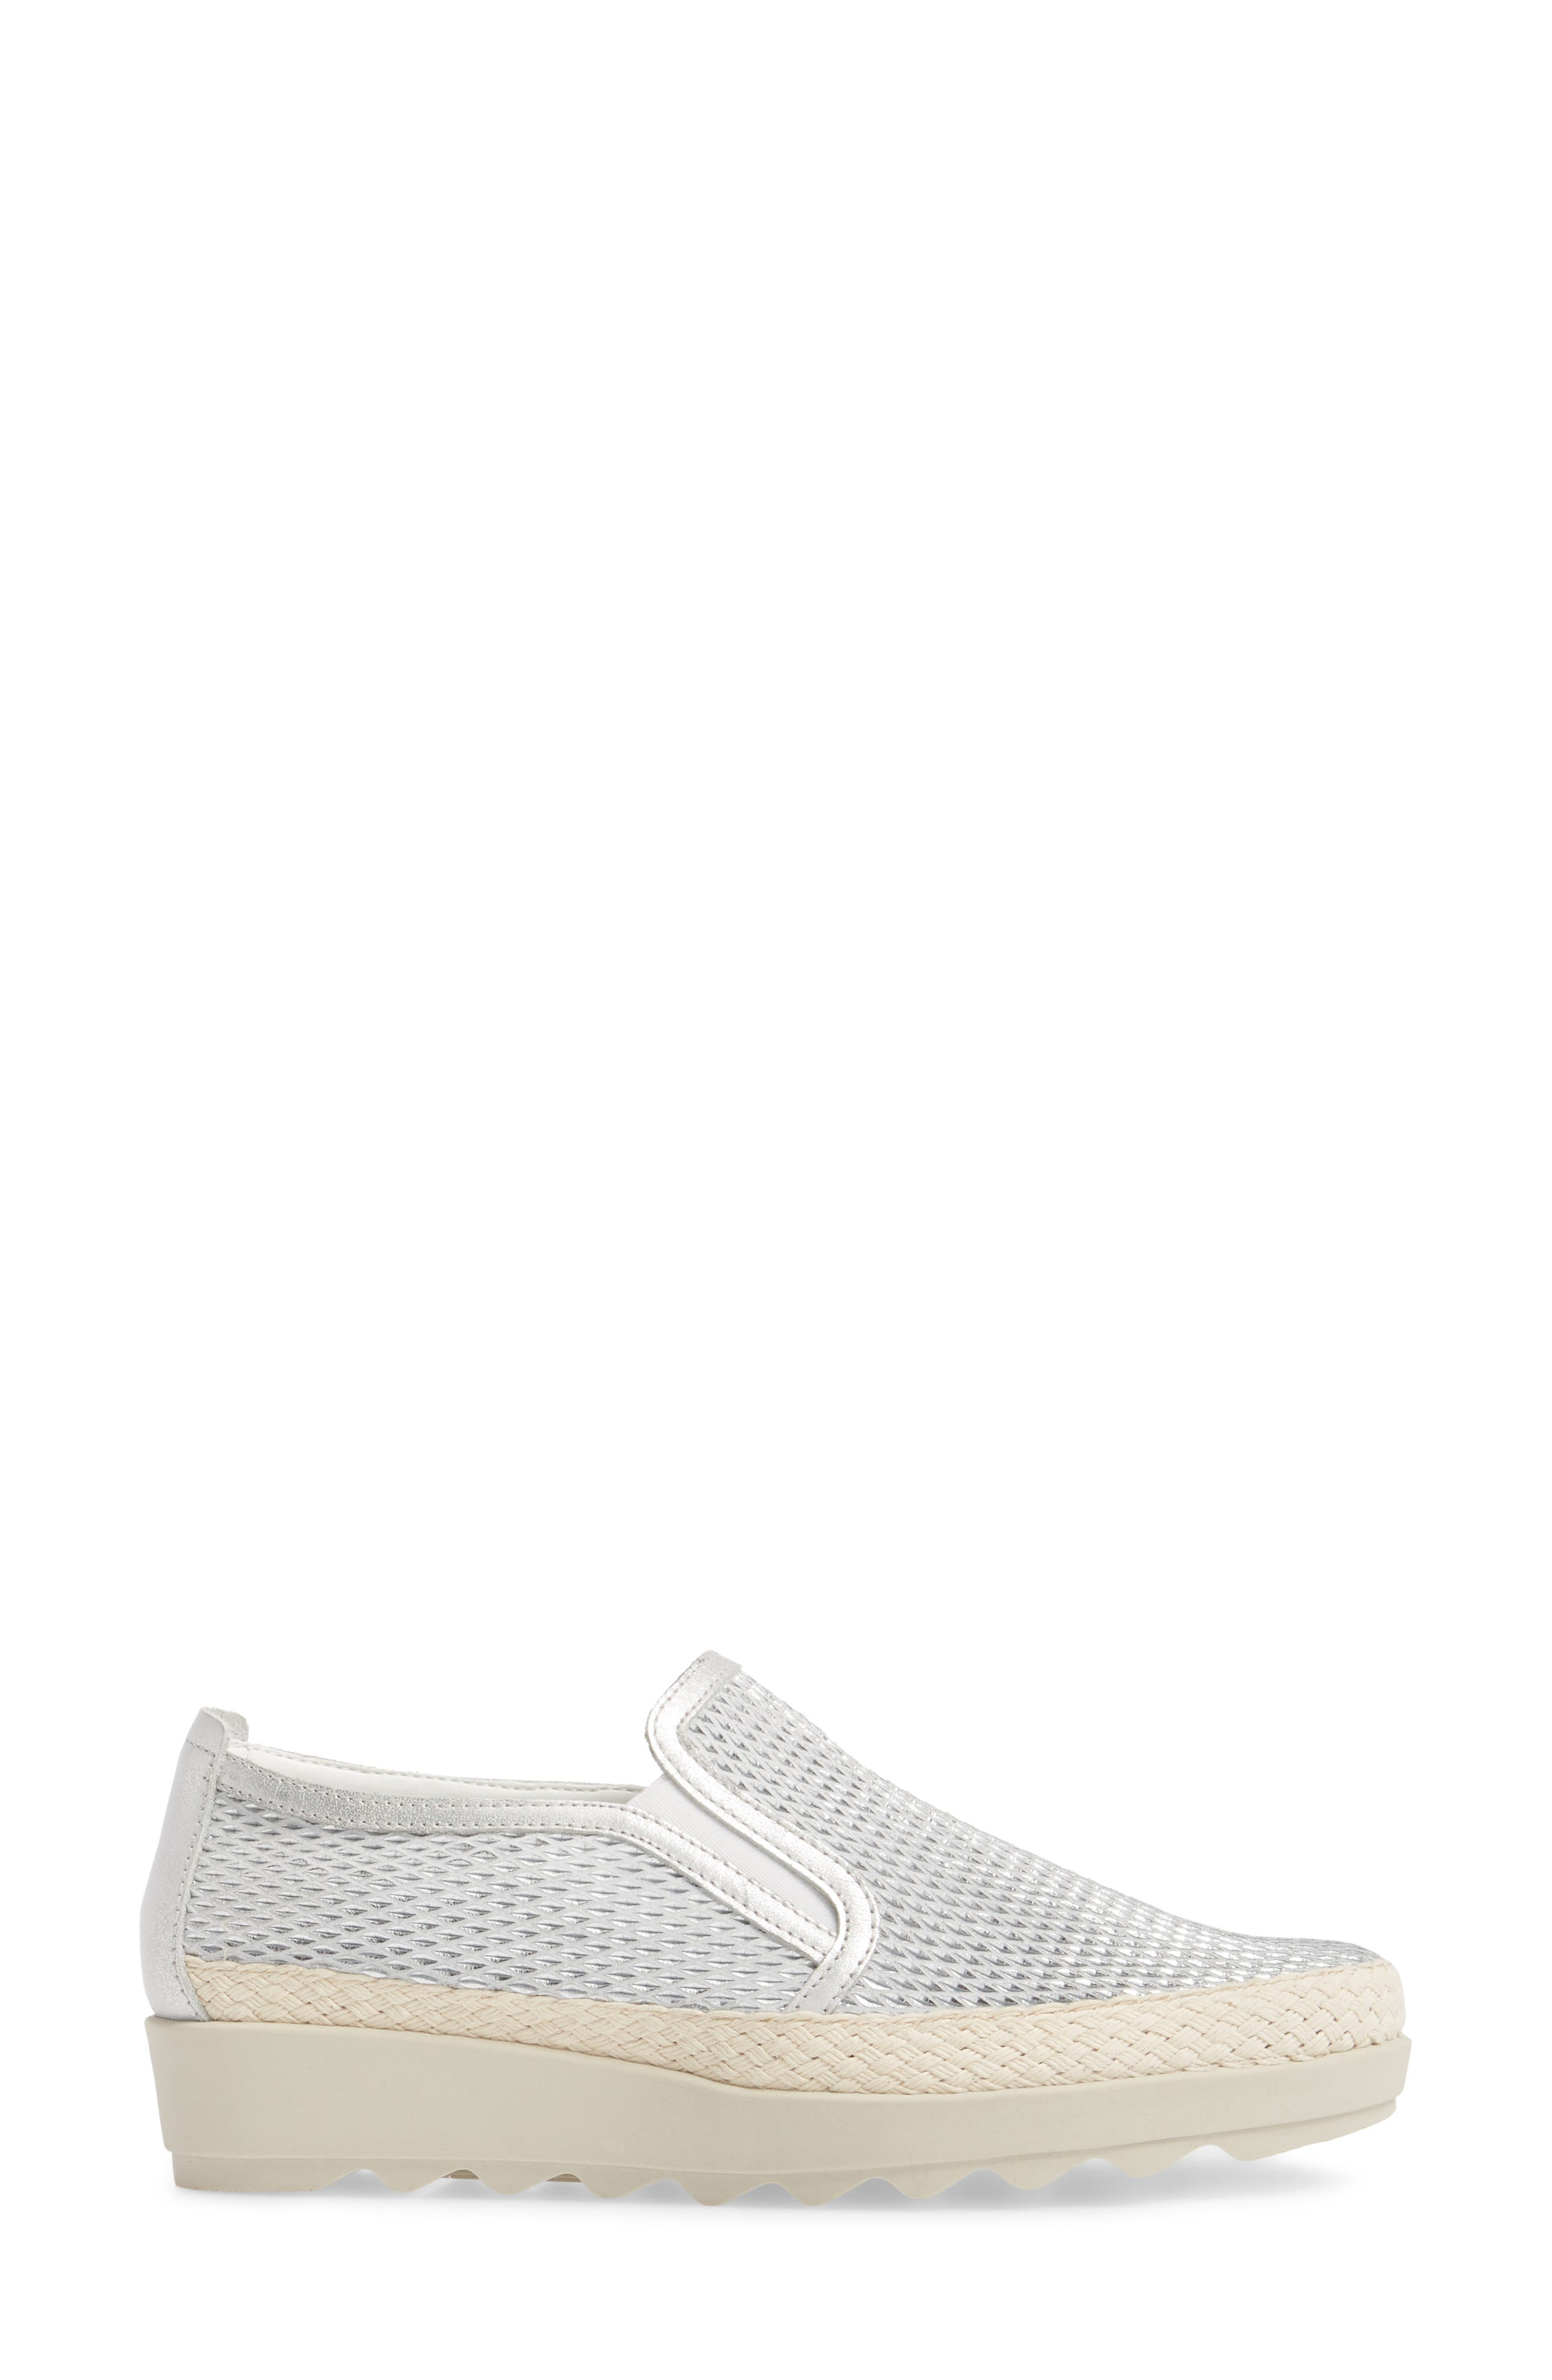 Call Me Perforated Slip-On Sneaker,                             Alternate thumbnail 3, color,                             White/ Silver Leather